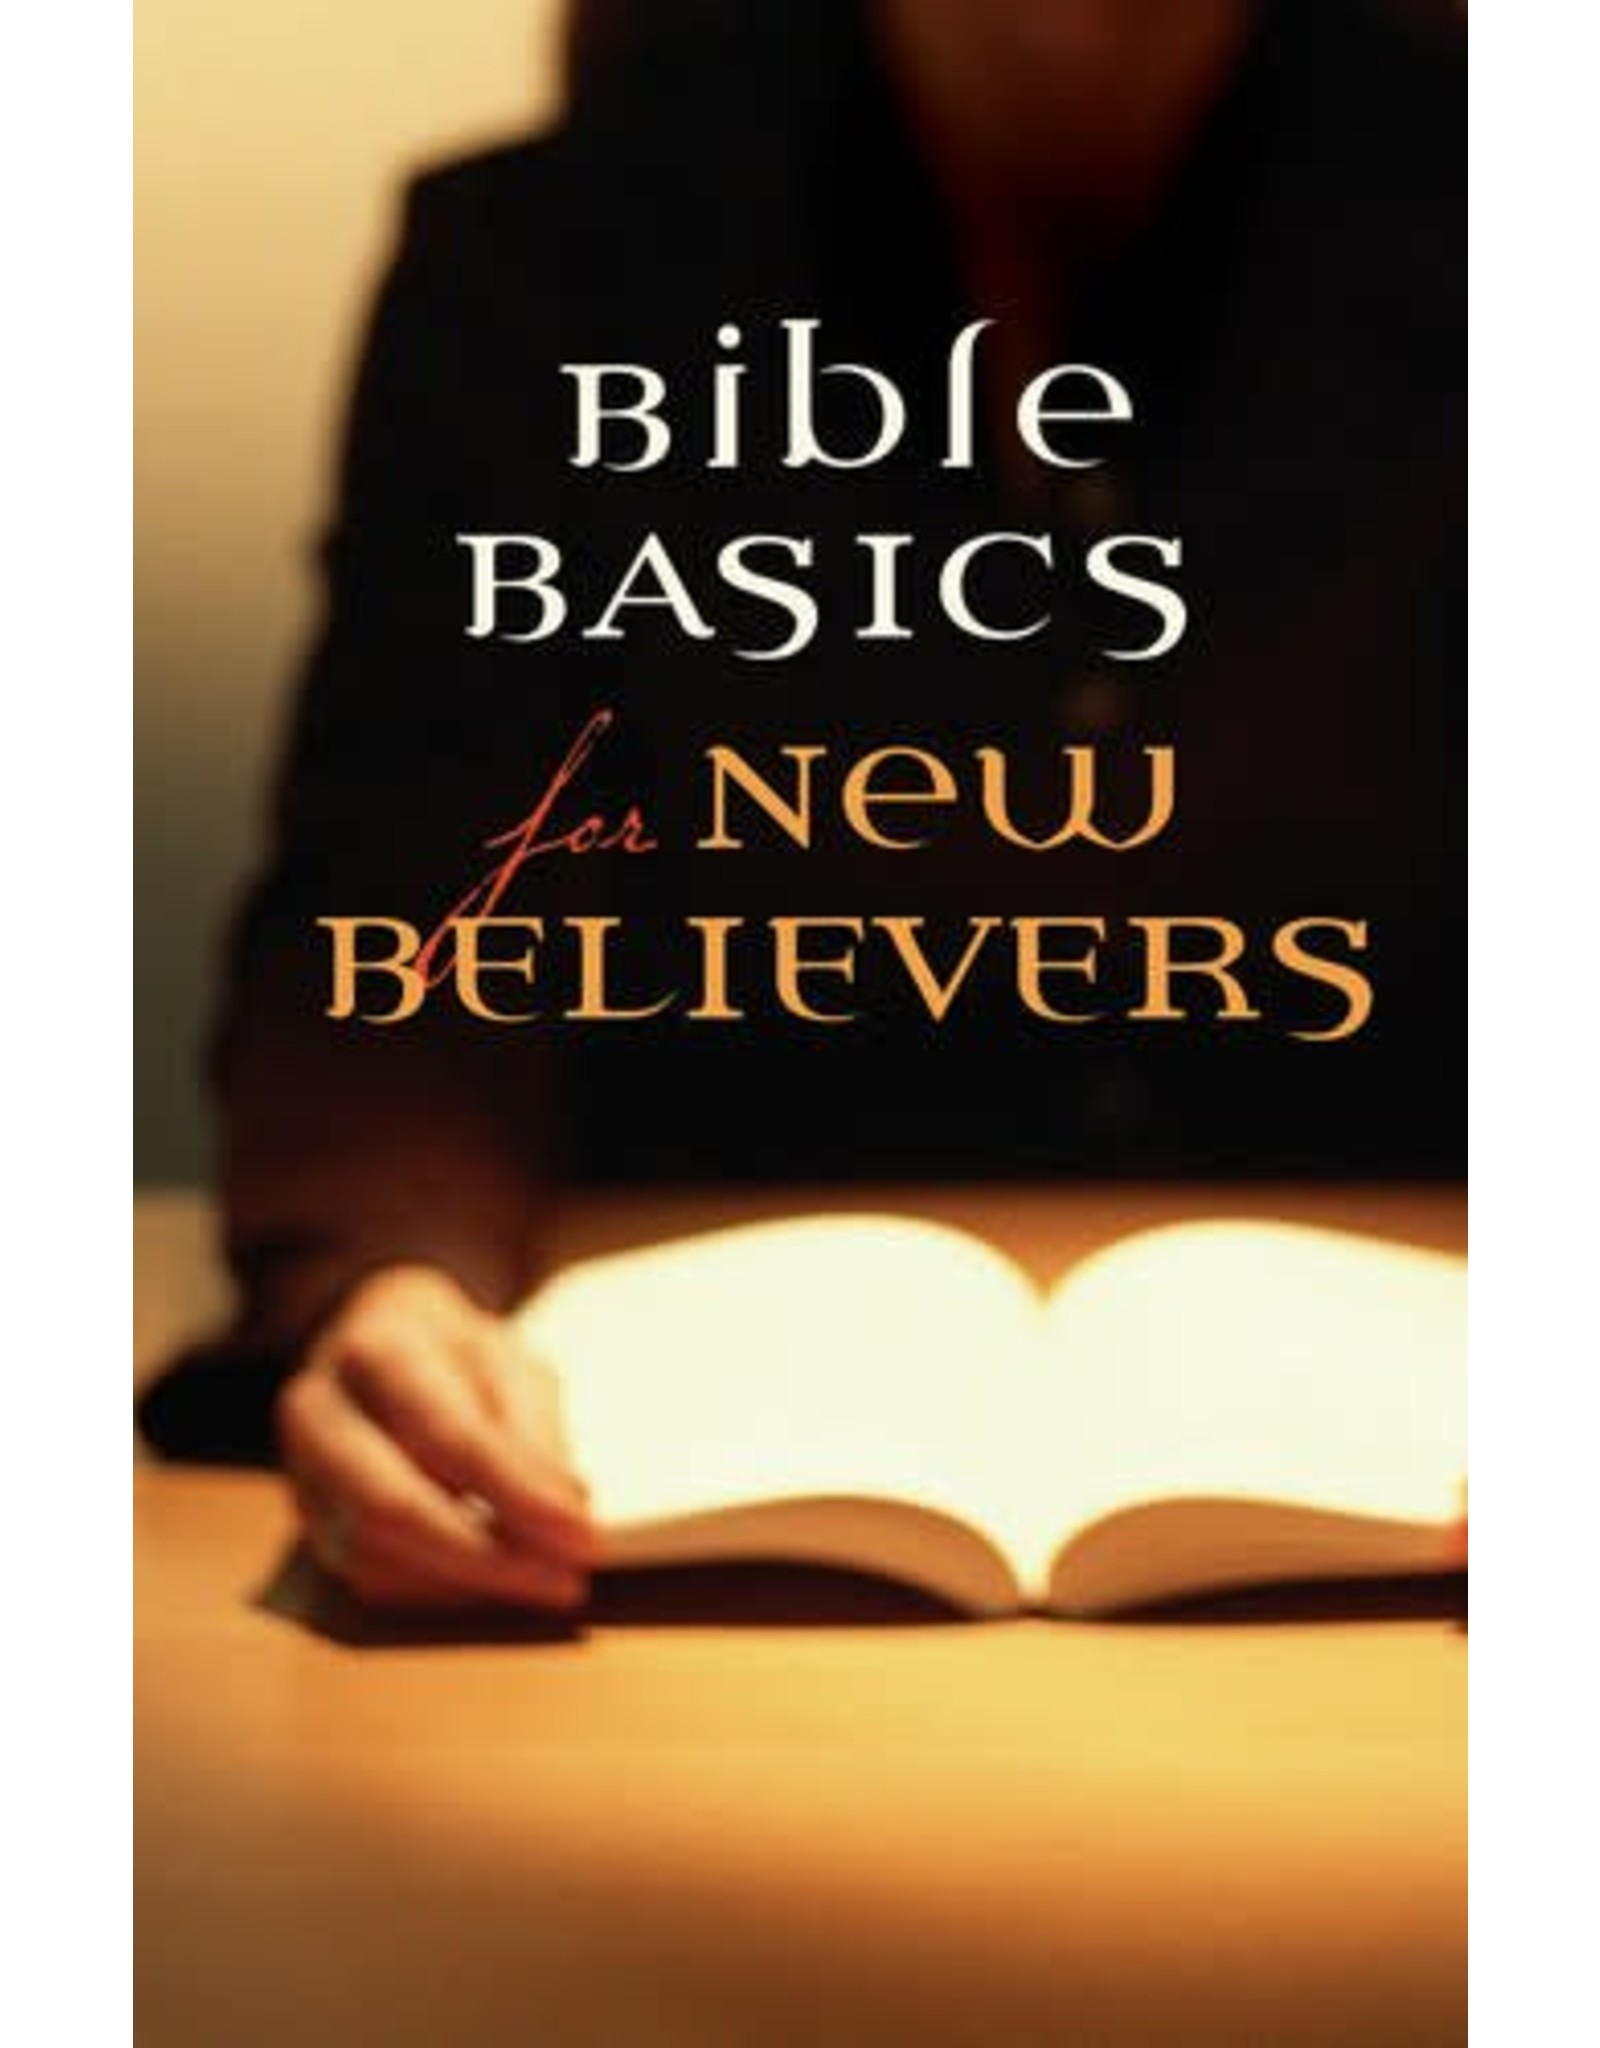 Crossway / Good News Bible Basics for New Believers Tract - 25 pack